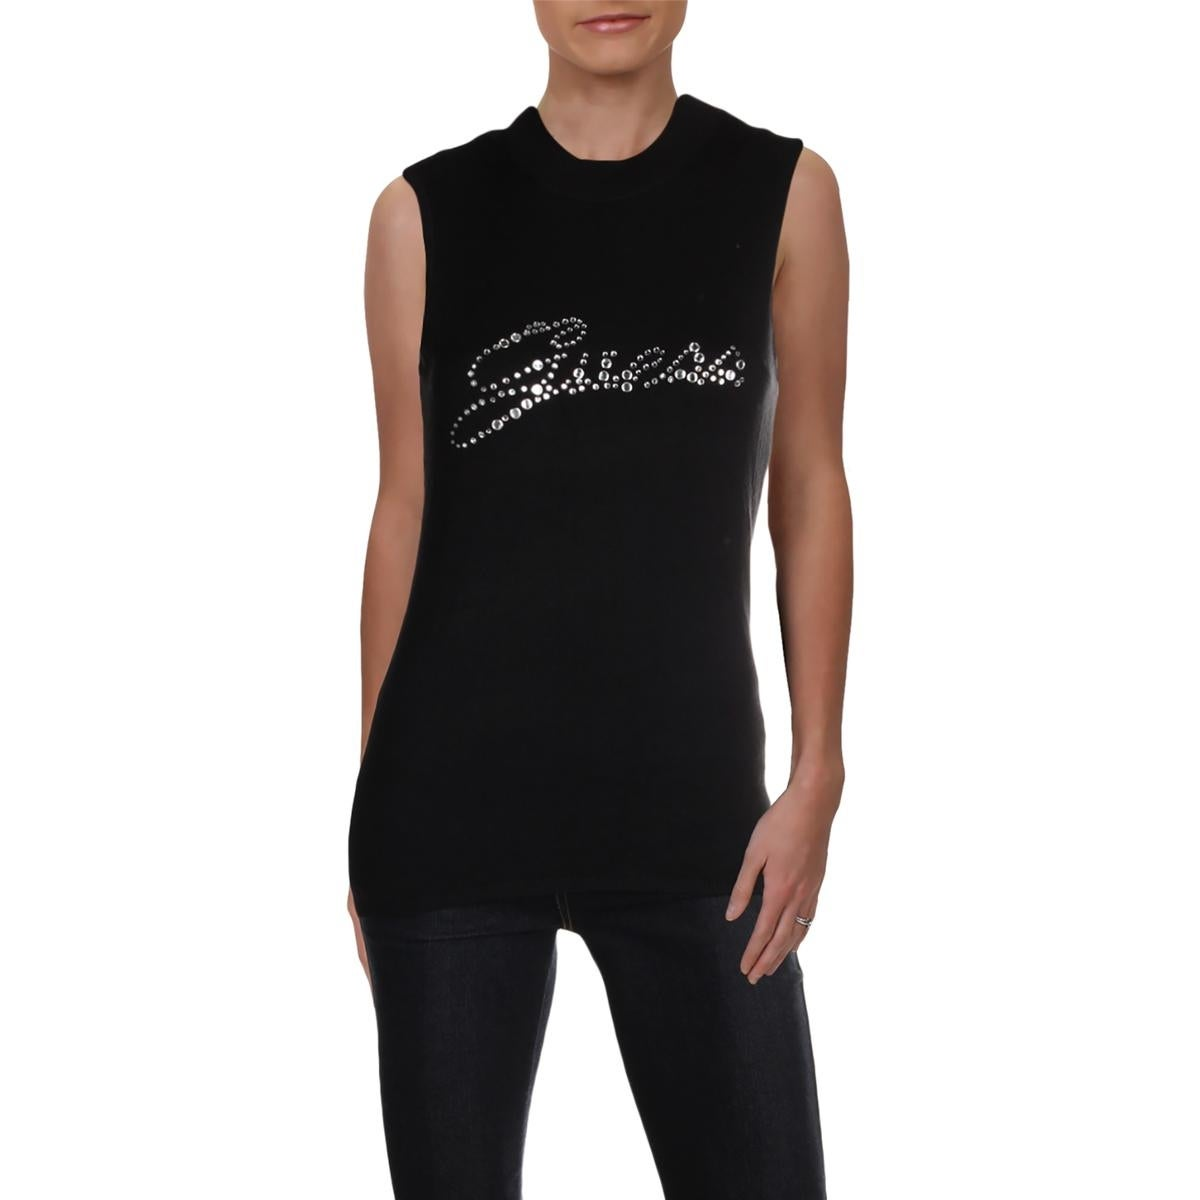 87a94a794ea22 Shop Guess Womens Holly Tank Top Sweater Embellished Mock Neck - Free  Shipping On Orders Over  45 - Overstock - 25627367